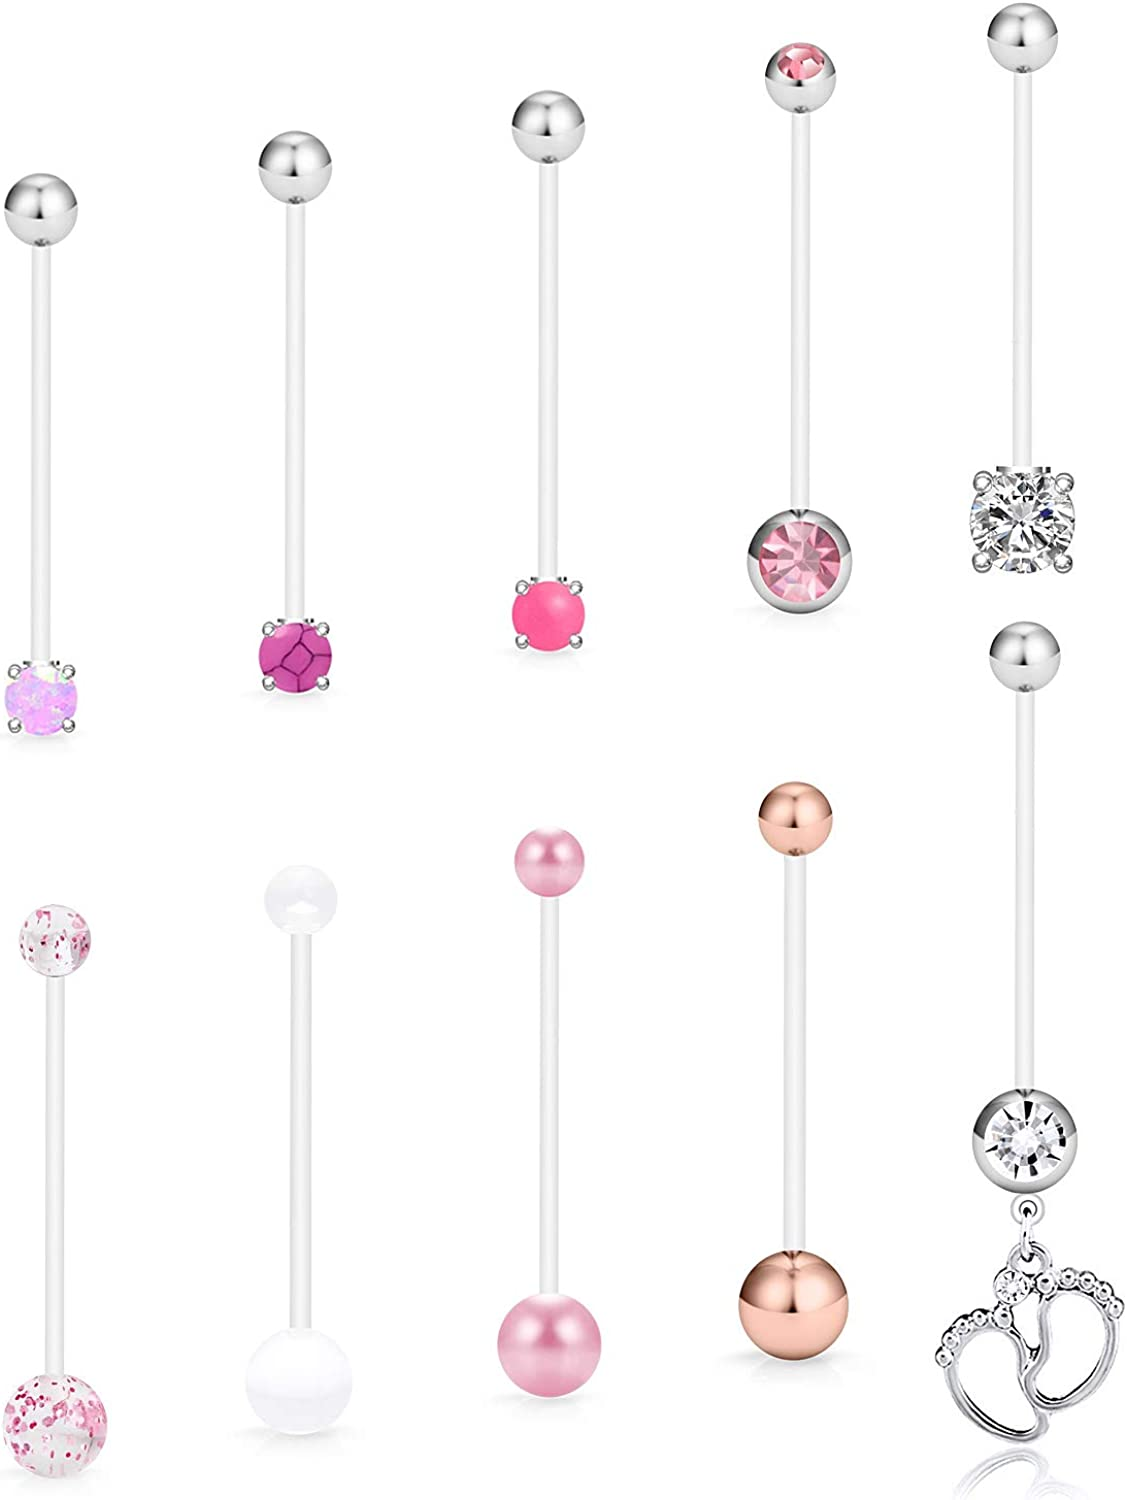 SCERRING Pregnancy Belly Button Rings 14G Clear Acrylic Bioflex Opal Sport Maternity Belly Navel Ring Barbell Body Jewelry Piercing 10PCS